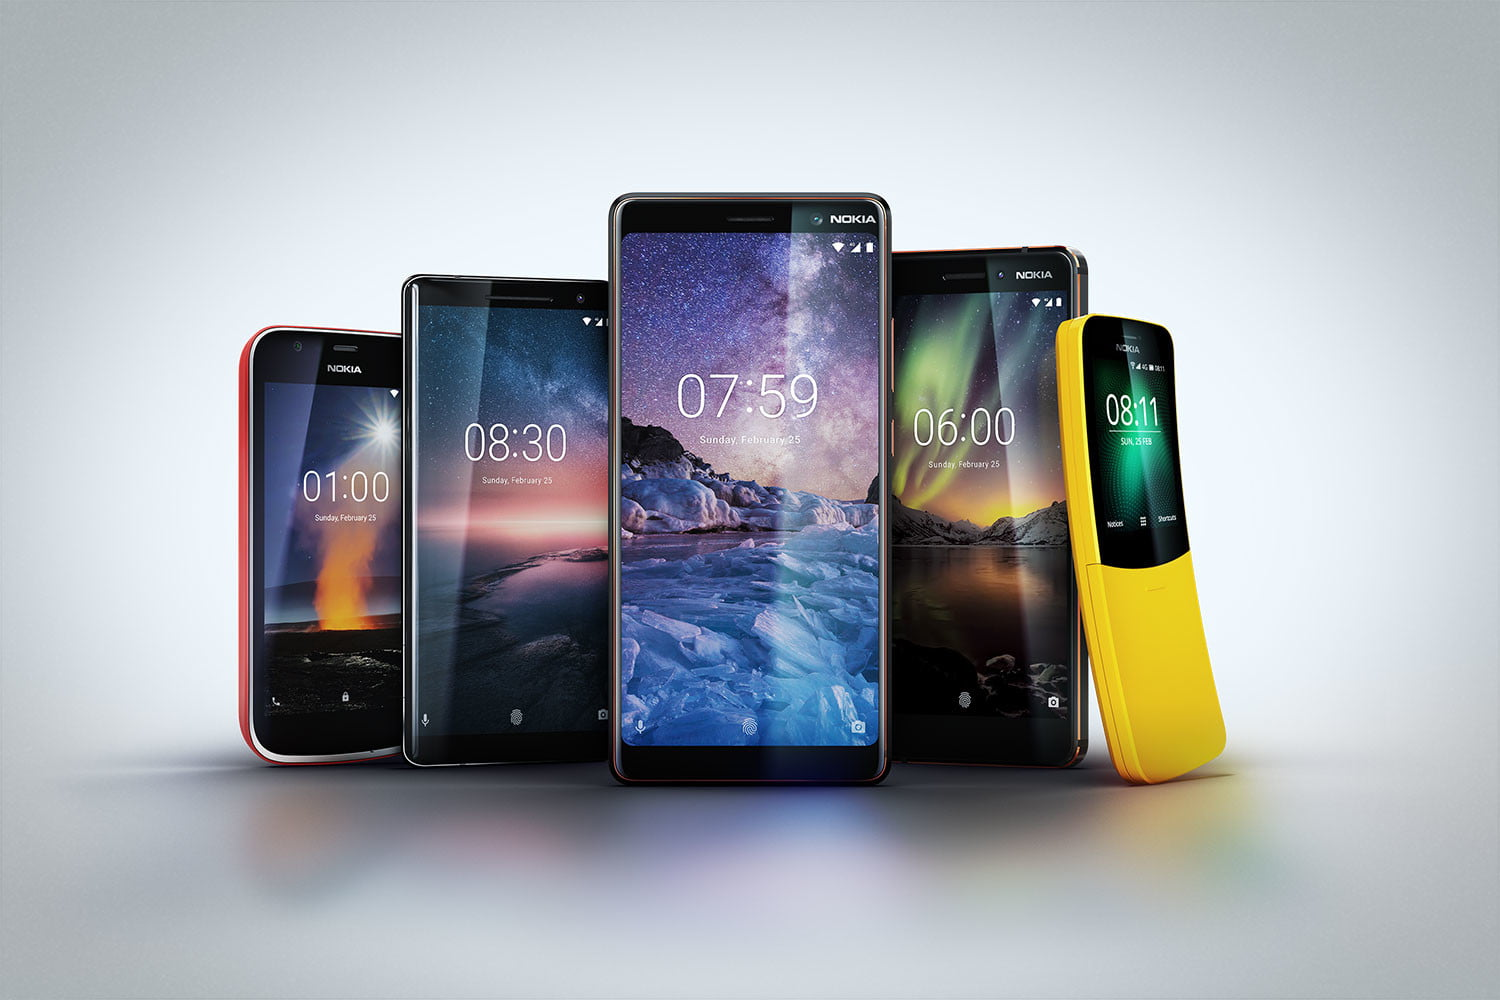 New Nokia Phones launched at MWC 2018